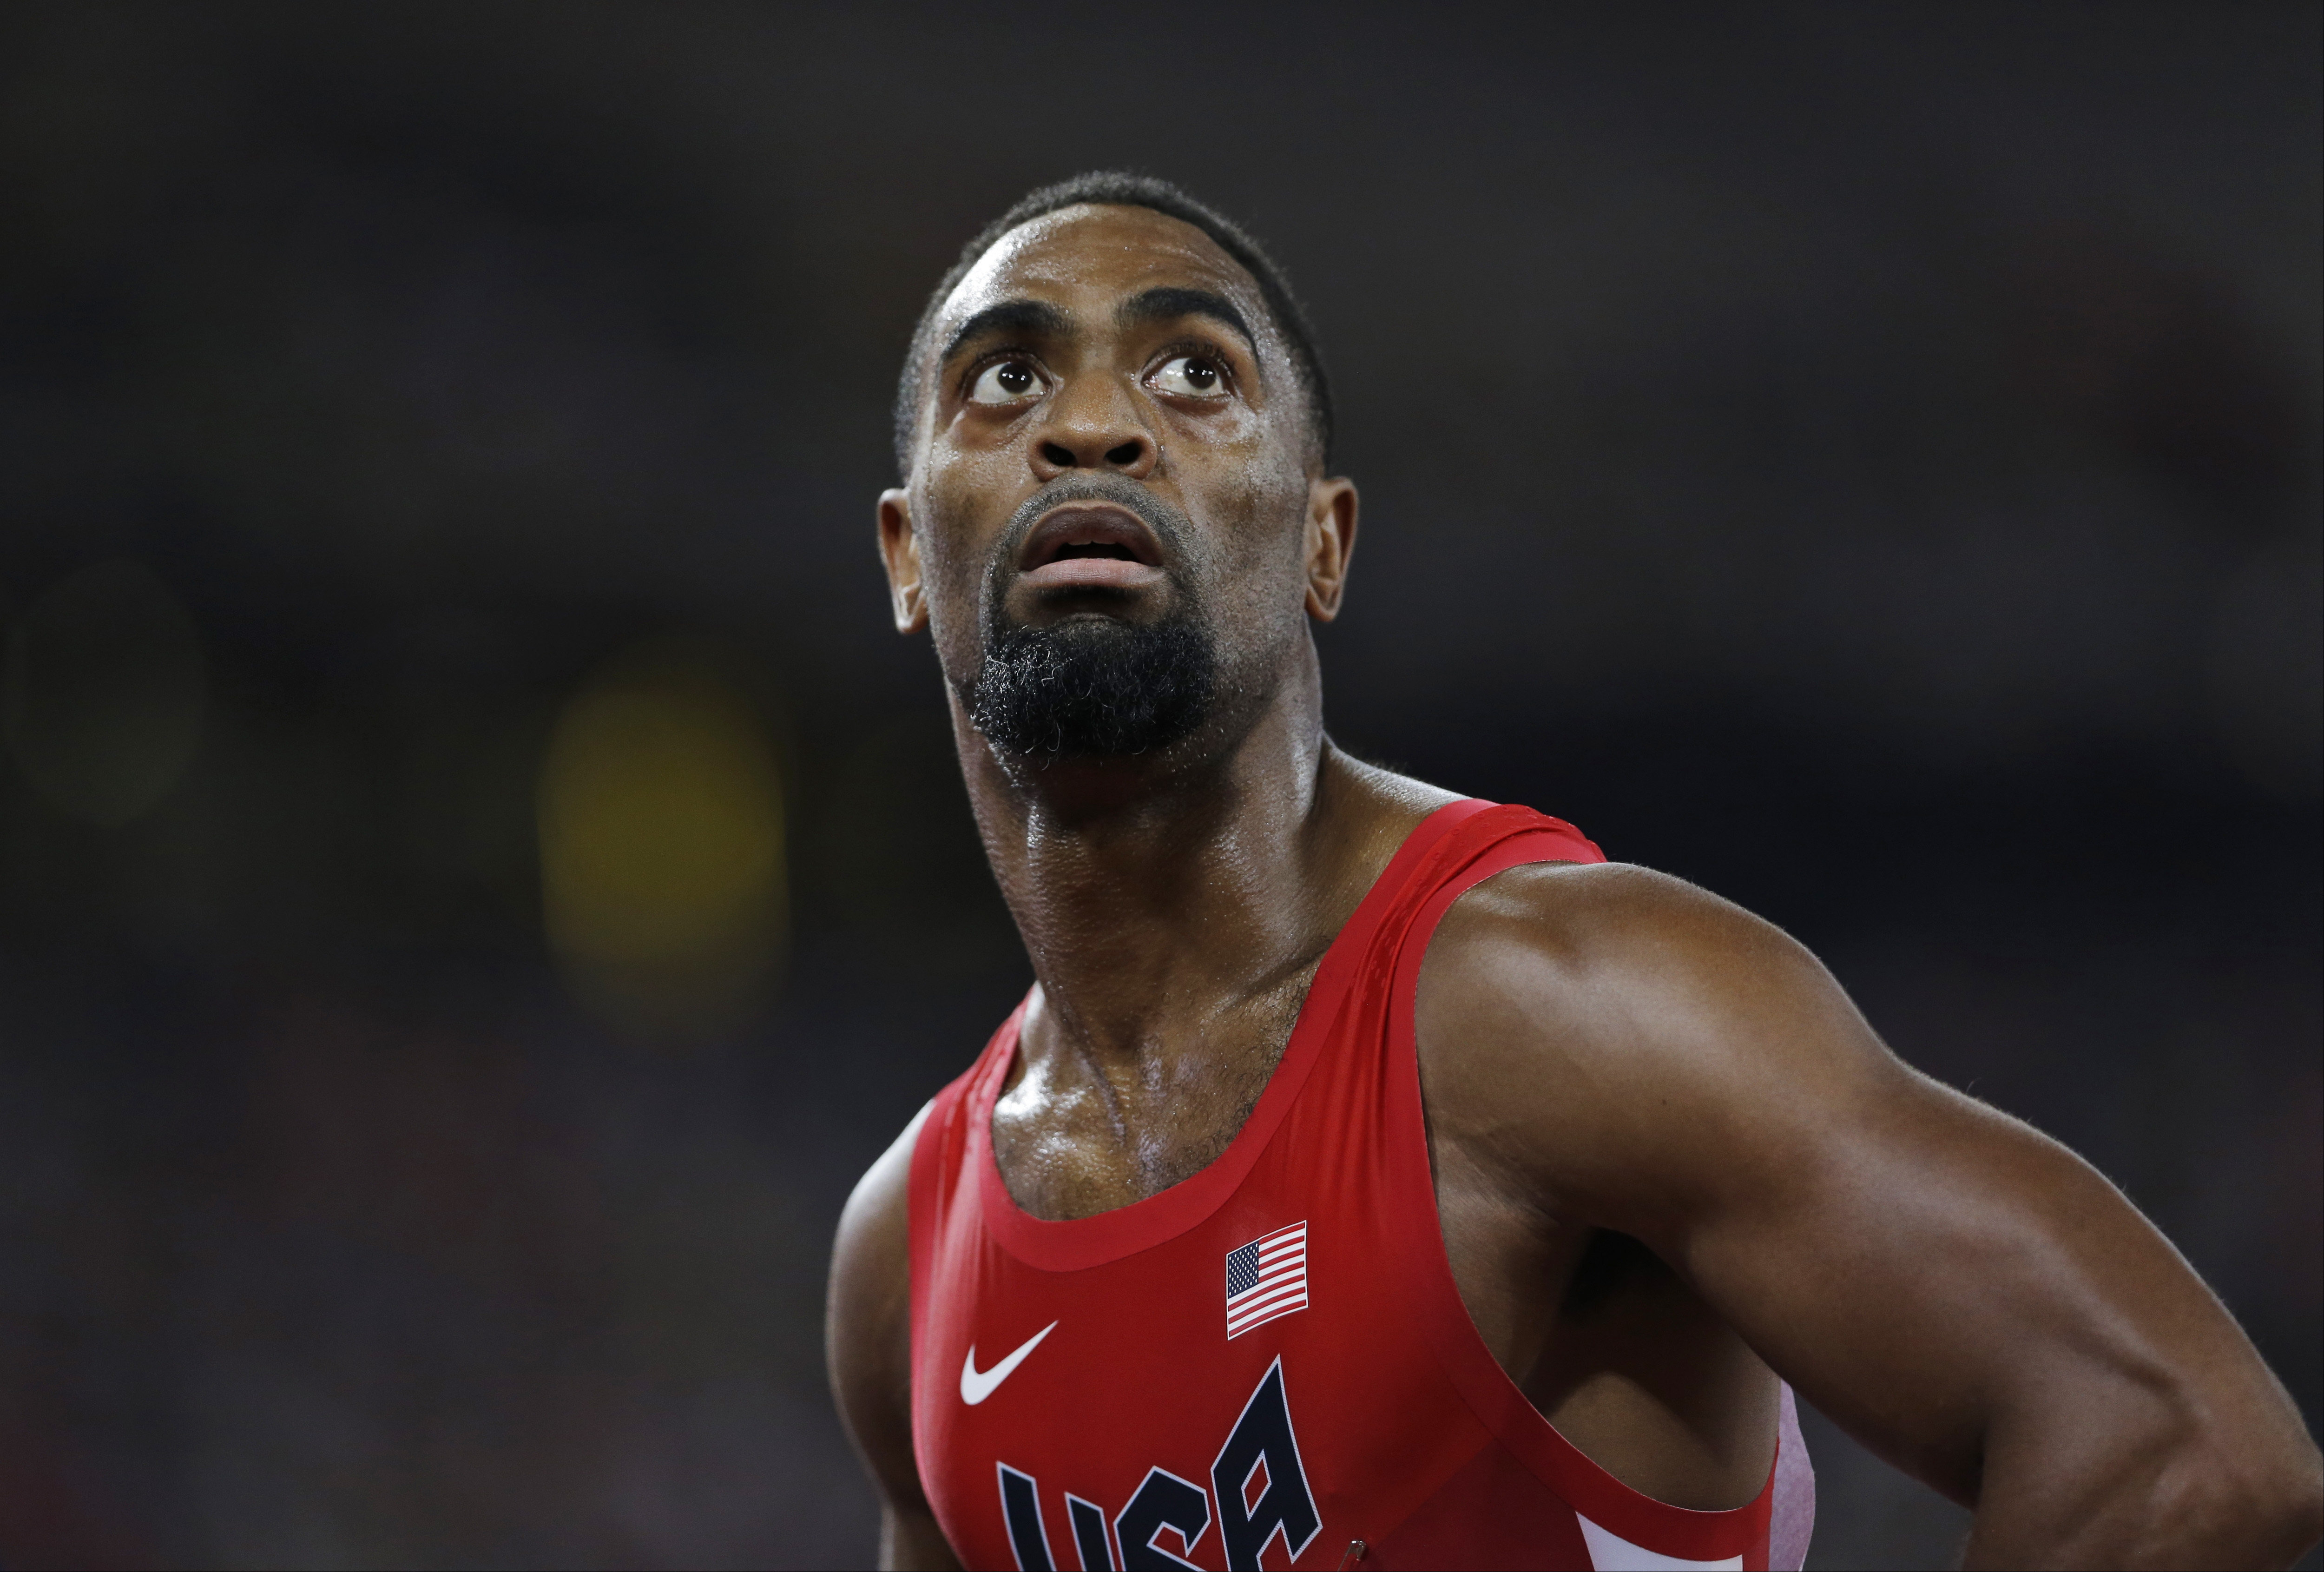 FILE - In this Aug. 23, 2015, file photo, United States' Tyson Gay looks at his time from a men's 100-meter semifinal at the World Athletics Championships at the Bird's Nest stadium in Beijing. The man who used to be considered the biggest threat to Usain